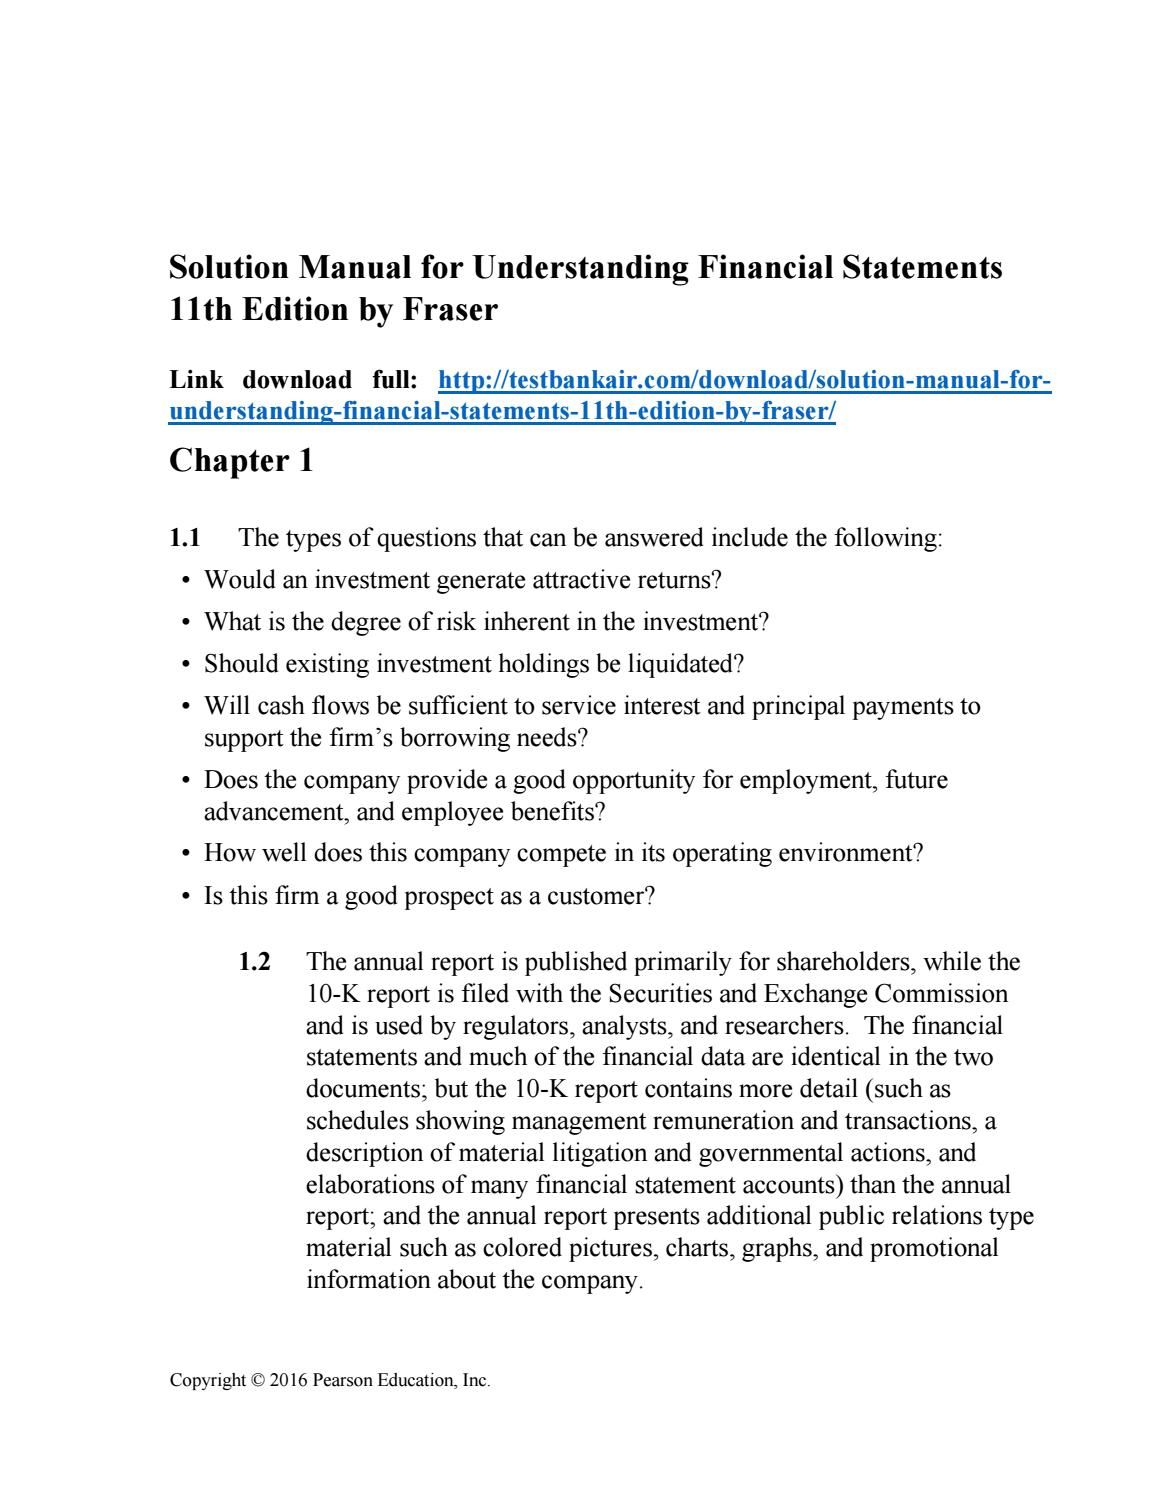 Download solution manual for understanding financial statements 11th  edition by fraser Financial Statement, Manual,